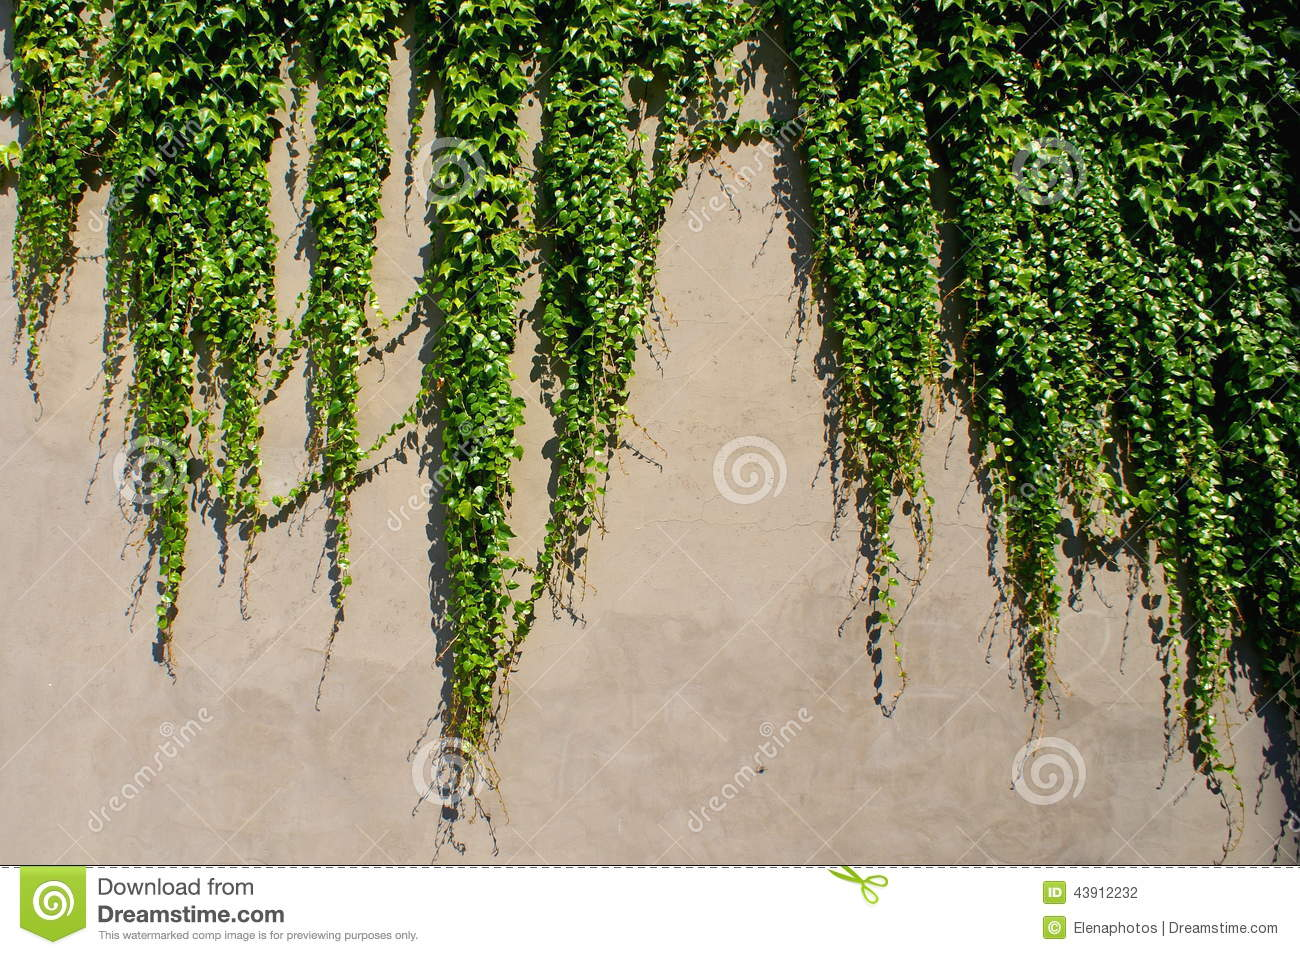 how to draw ivy on a wall